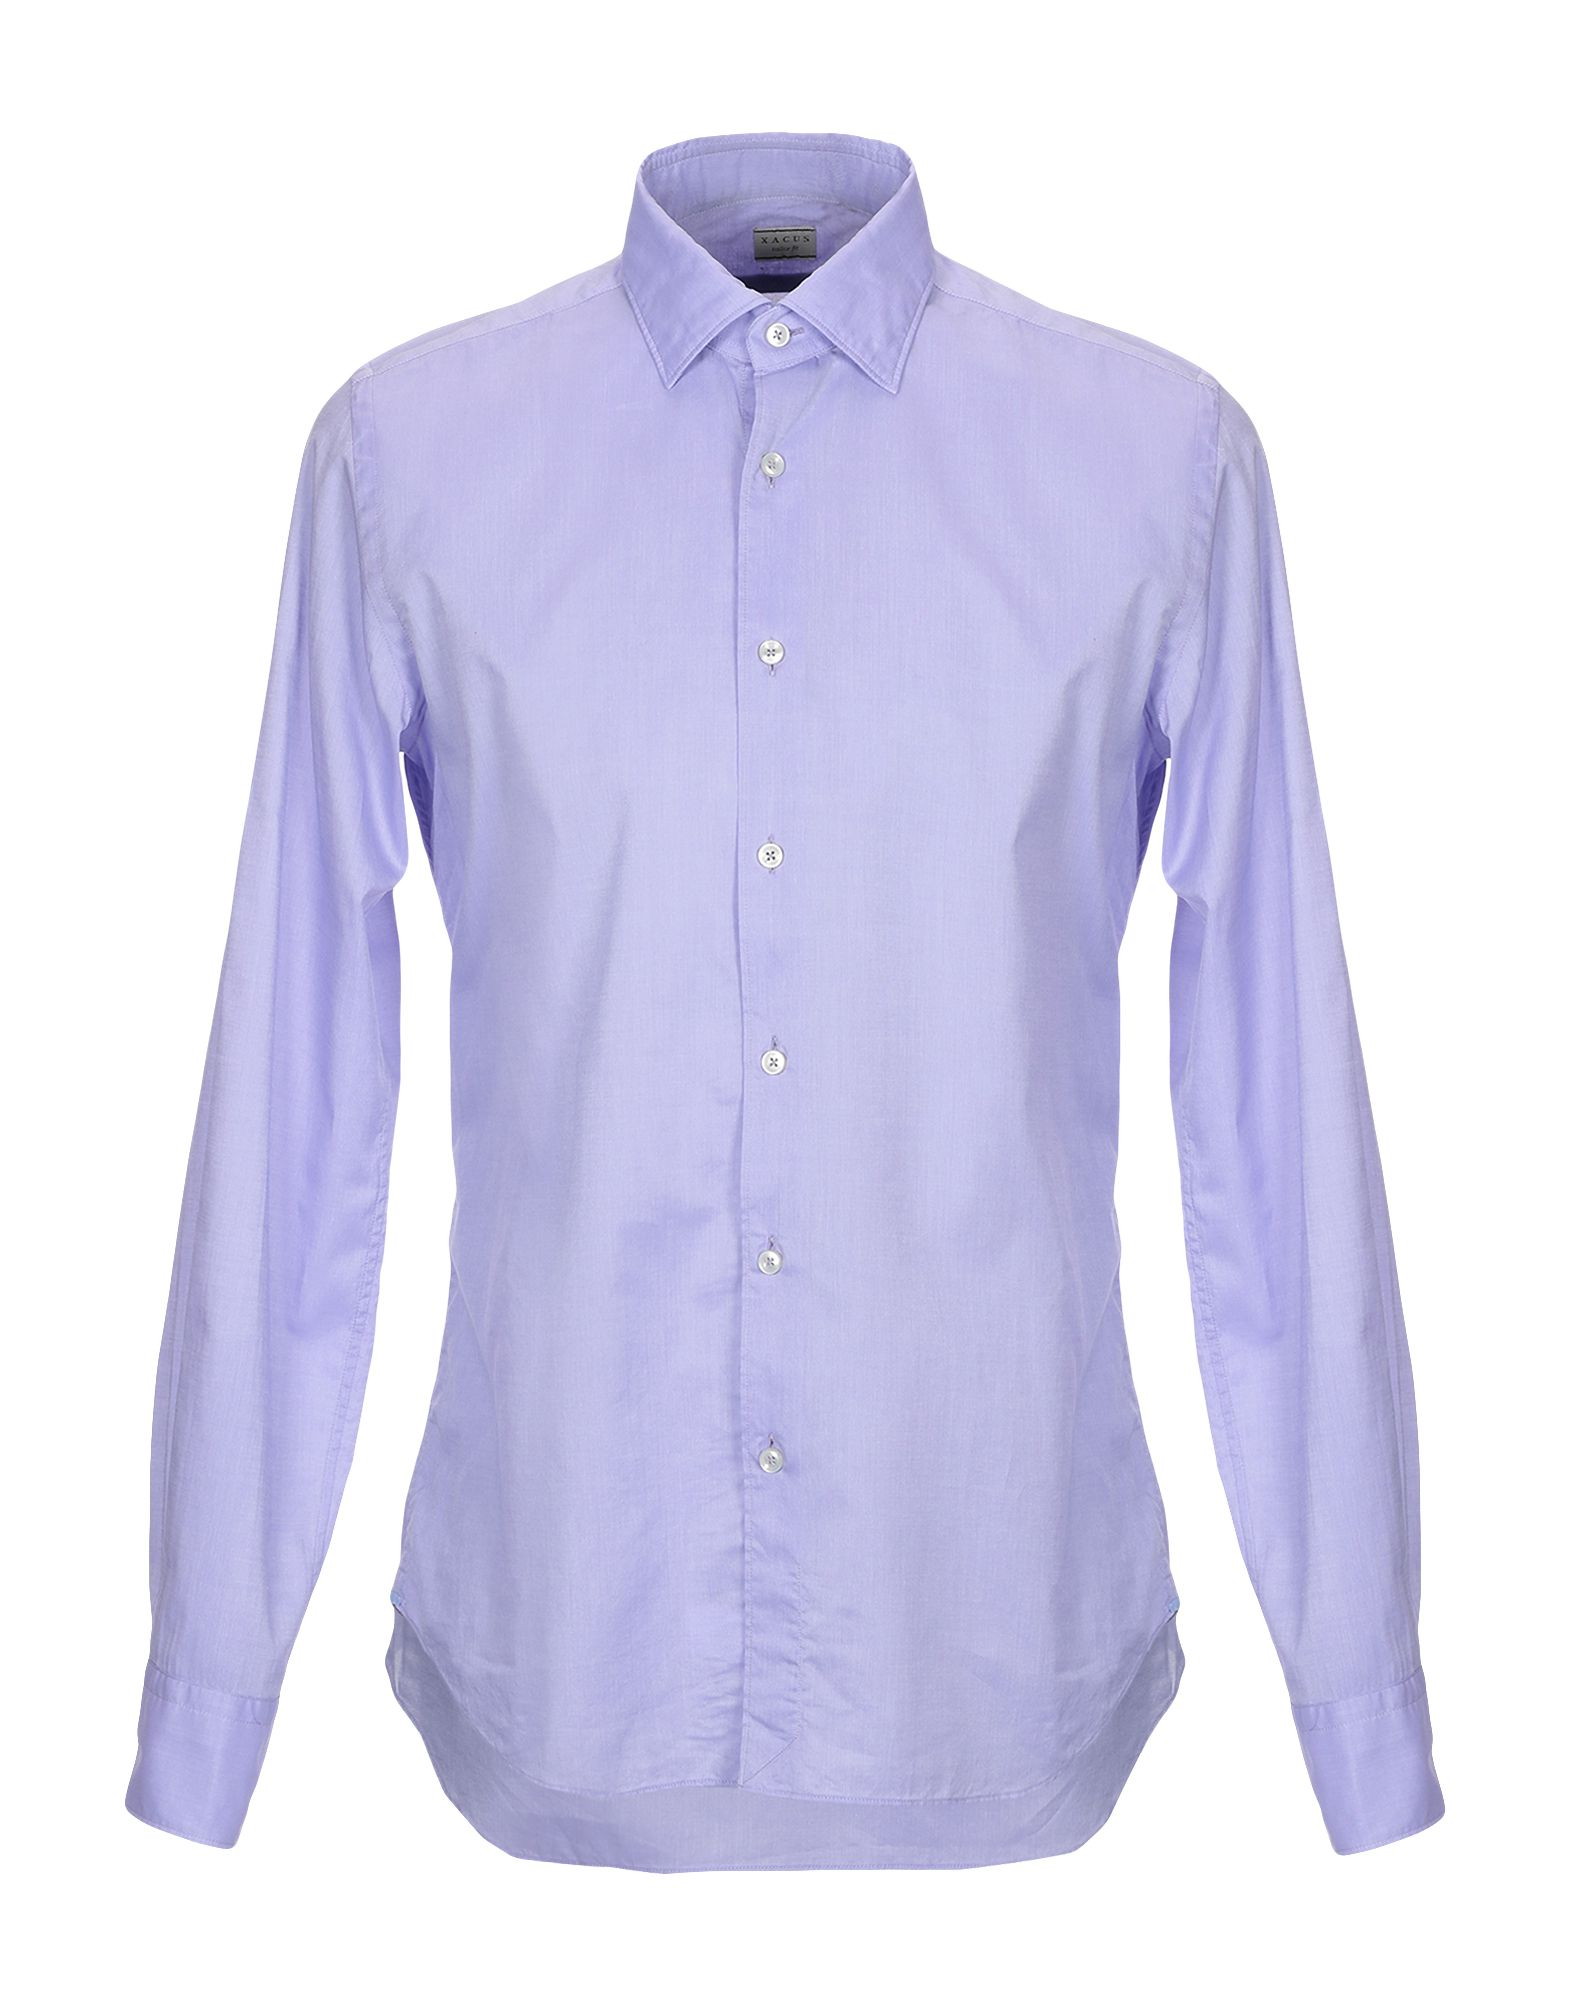 0b8e8e730f91 Xacus Solid Color Shirt - Men Xacus Solid Color Shirts online on ...